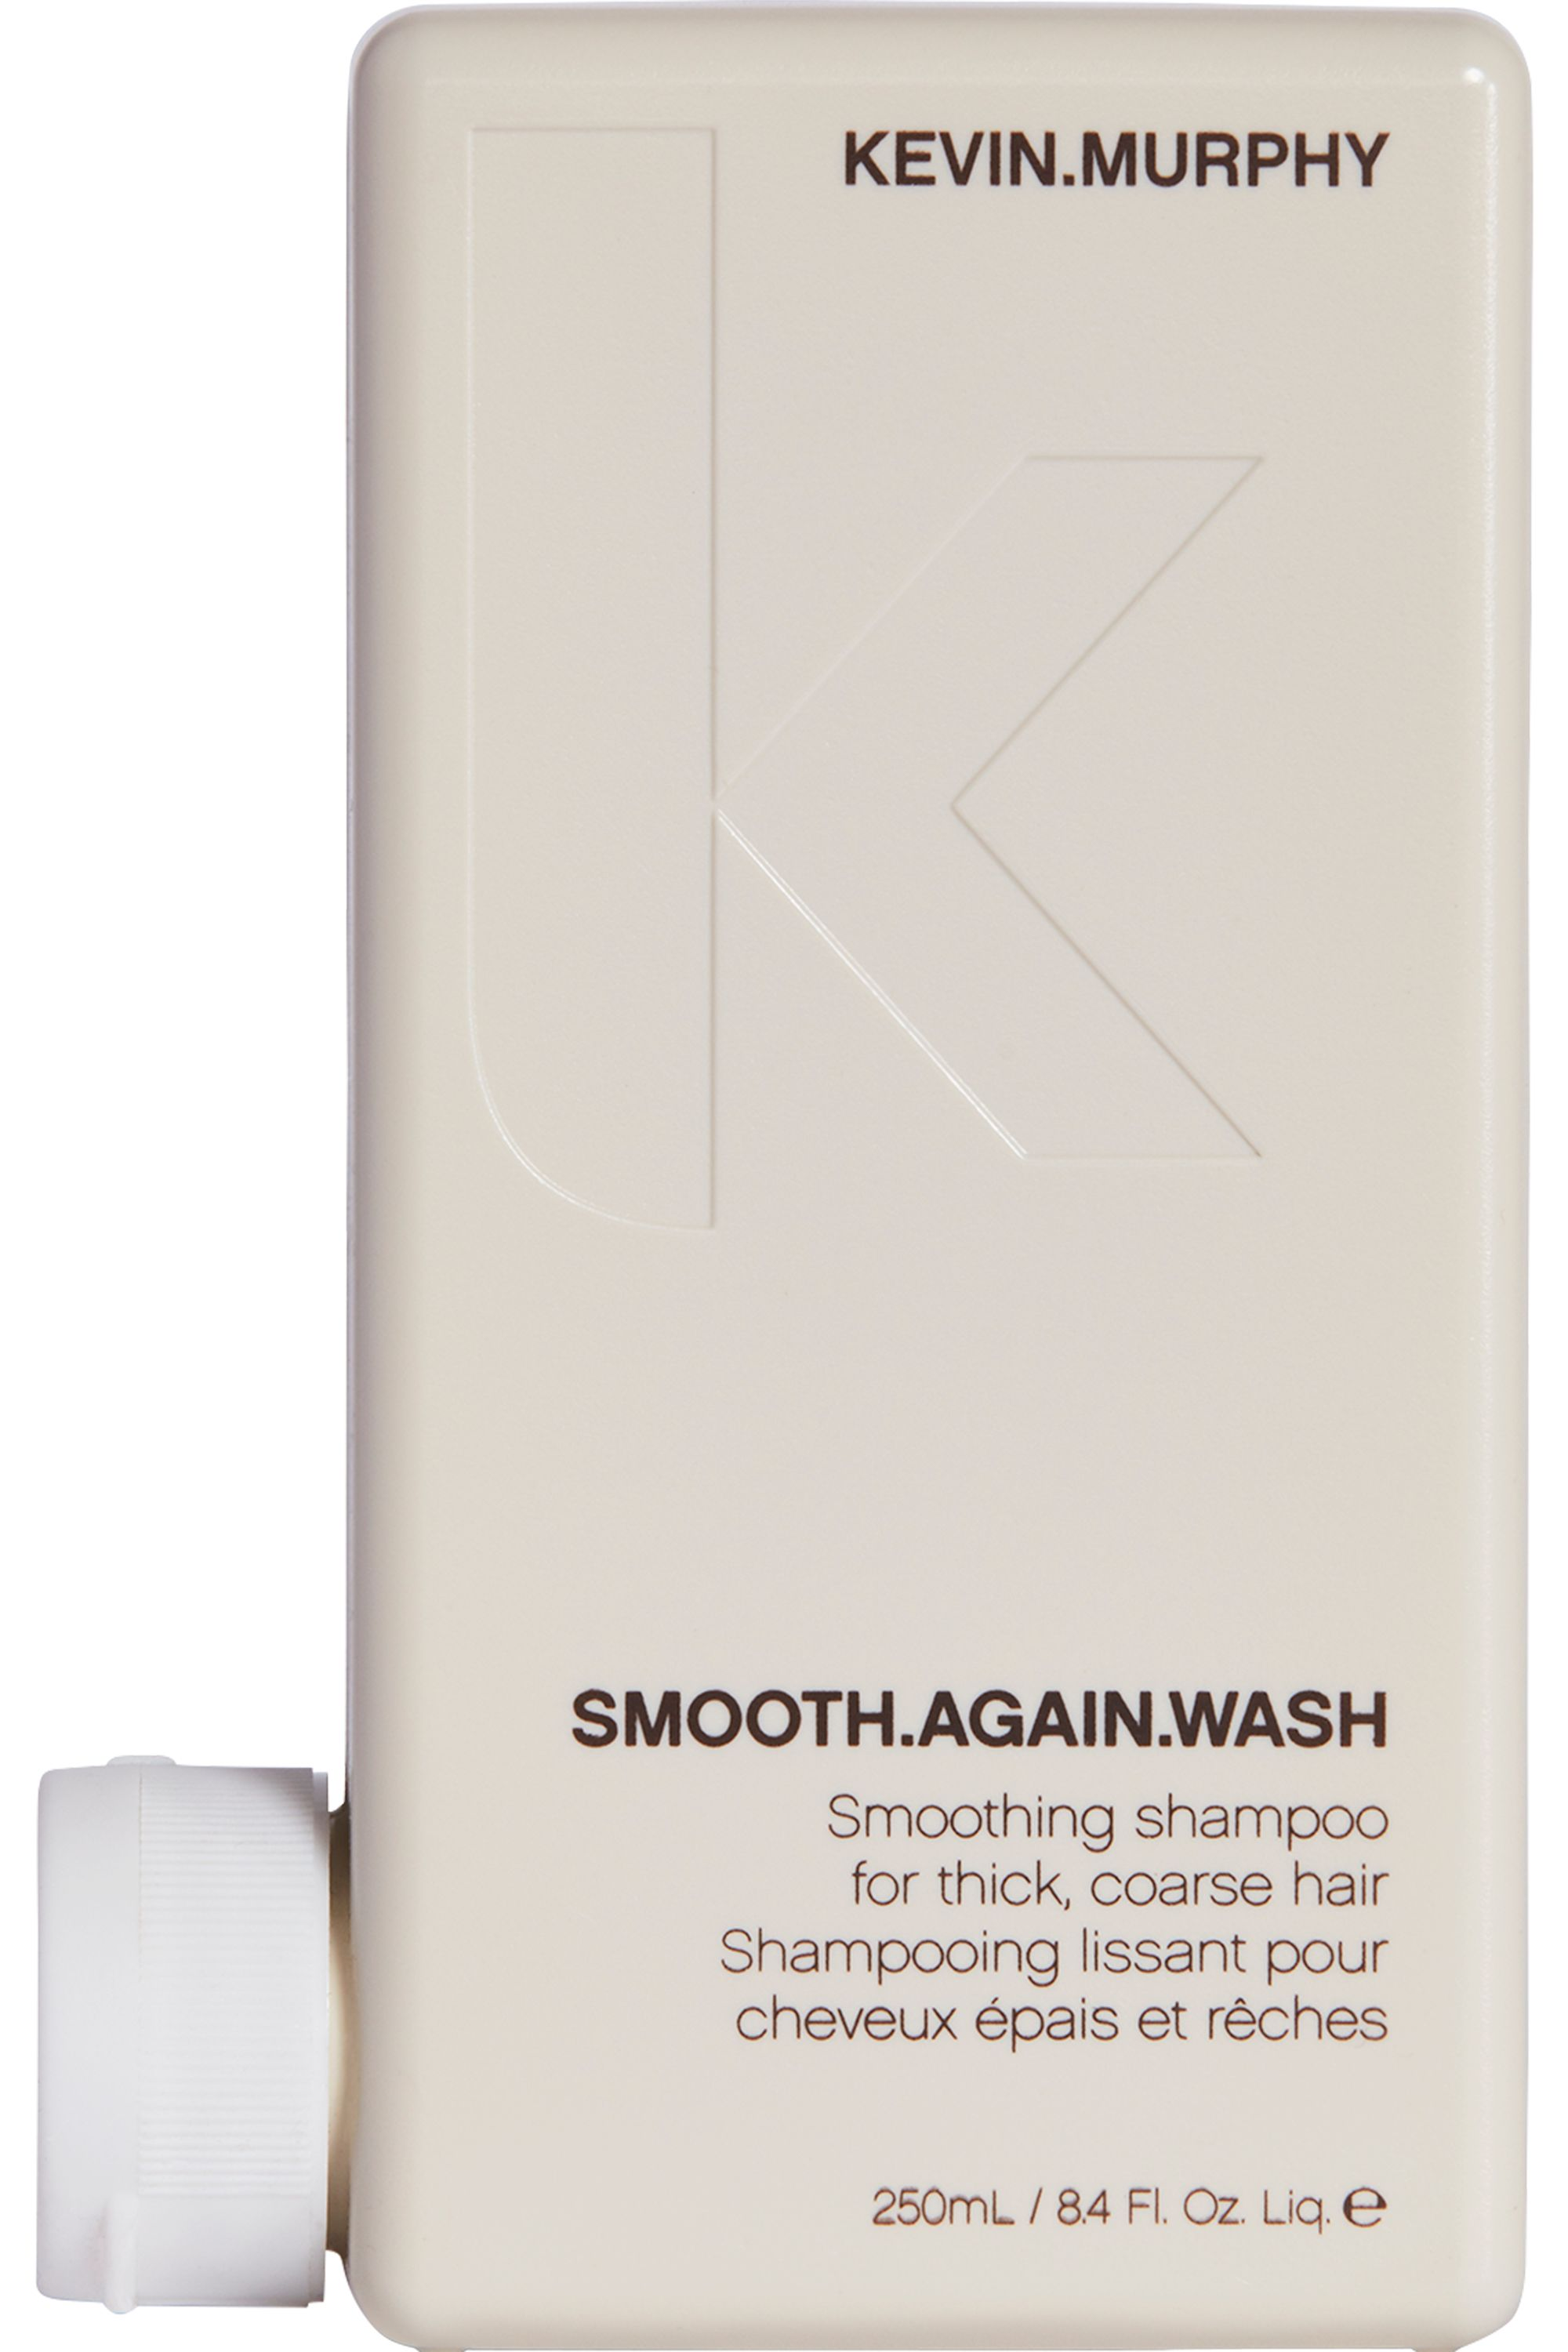 Blissim : KEVIN.MURPHY - Shampooing lissant pour cheveux épais SMOOTH.AGAIN.WASH - Shampooing lissant pour cheveux épais SMOOTH.AGAIN.WASH